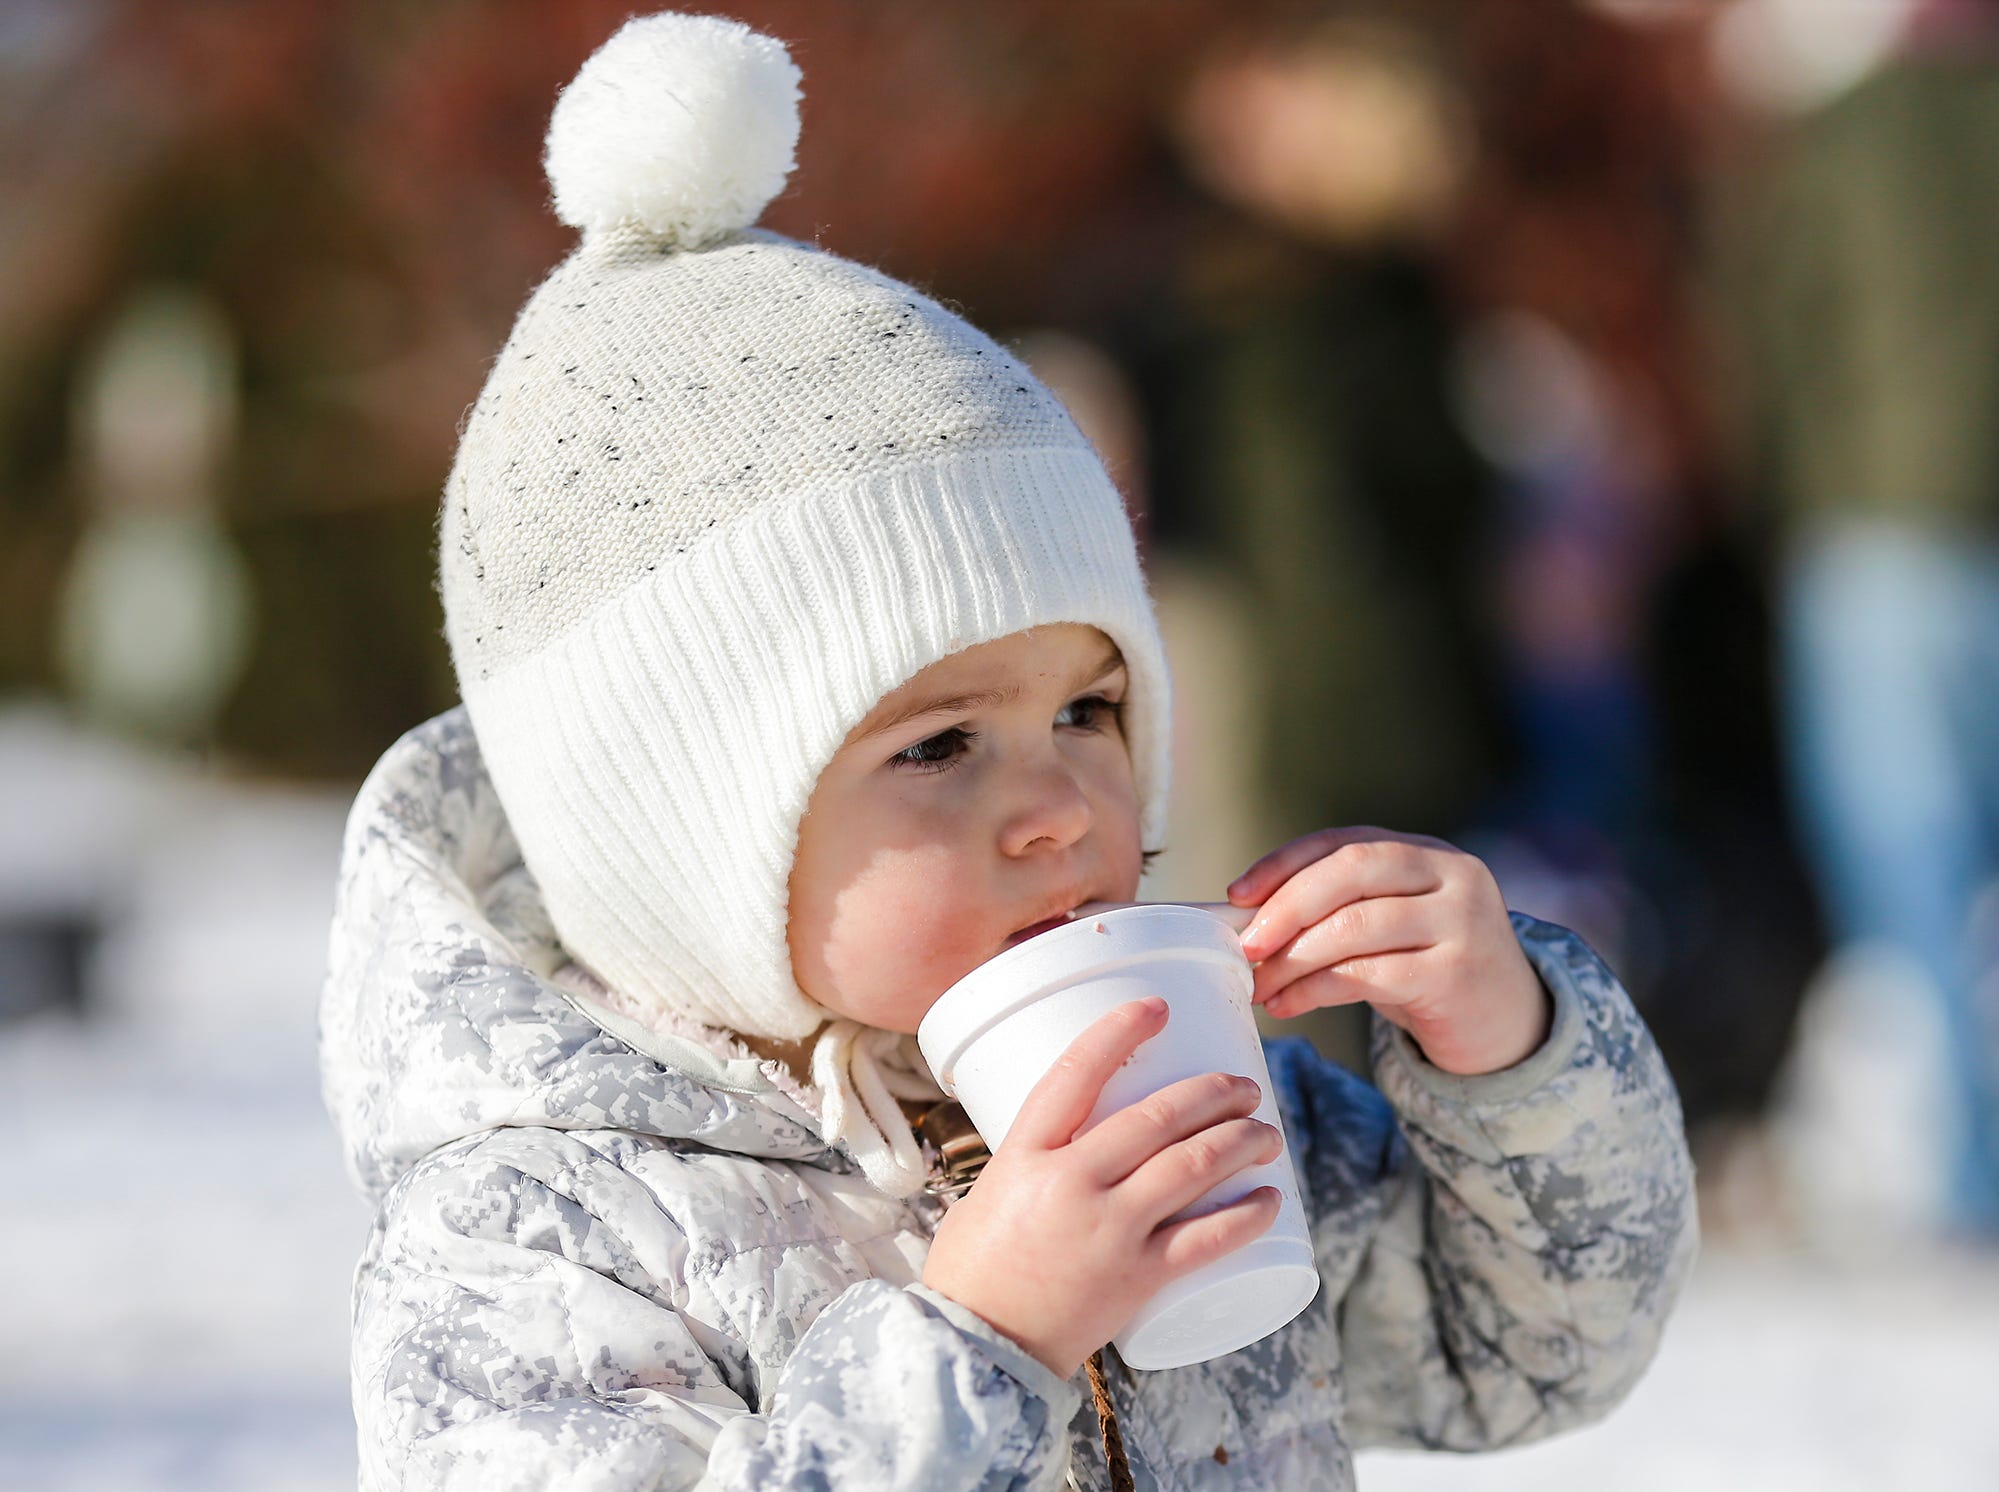 Ingrid Sande of Fond du Lac, enjoys a hot chocolate at Winterfest Saturday, January 5, 2019 at Hamilton park in Fond du Lac, Wisconsin. Doug Raflik/USA TODAY NETWORK-Wisconsin